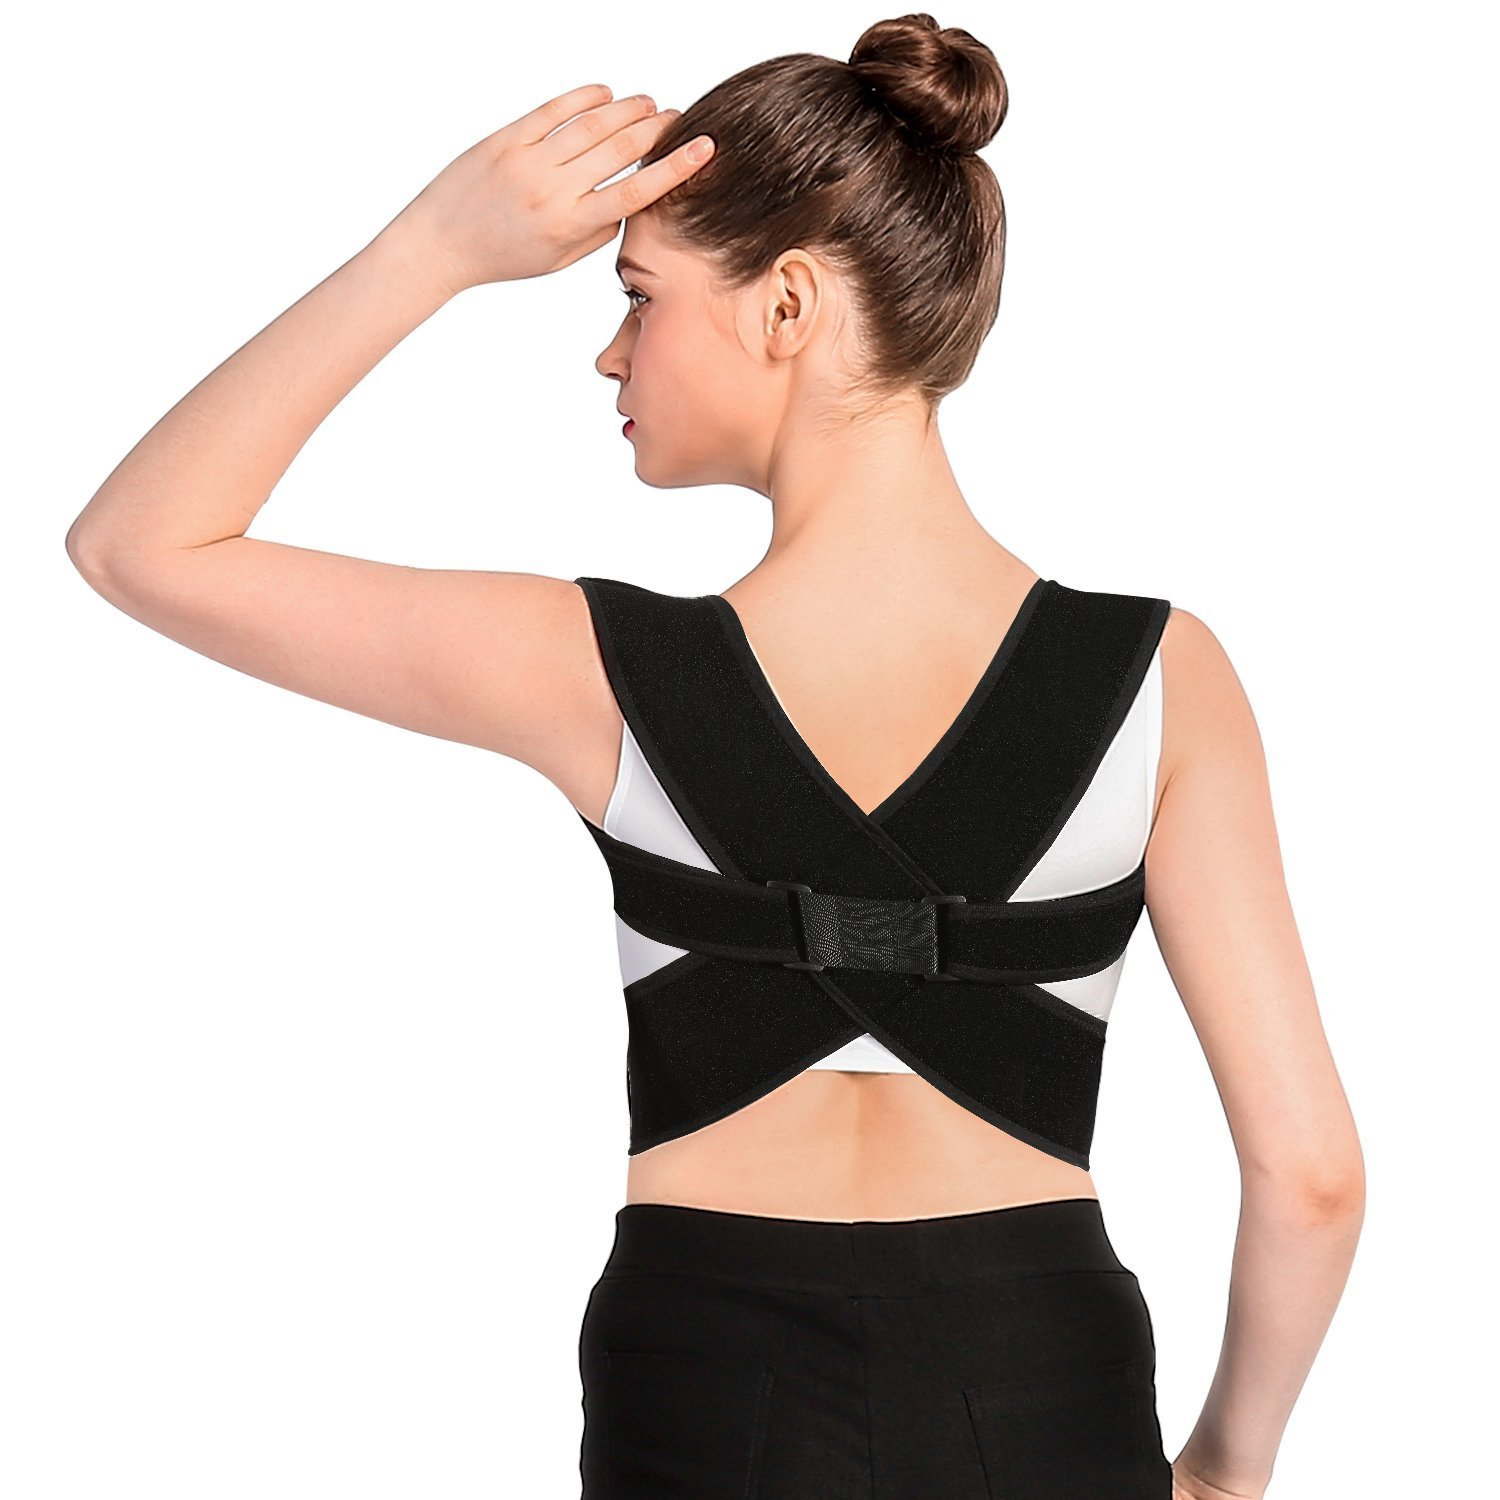 Posture Corrector Brace and Clavicle Support Straightener for Upper Back Shoulder Forward Head Neck Aid, Improve and Fix Poor Posture for Women Men (M(28''-35'' Chest))